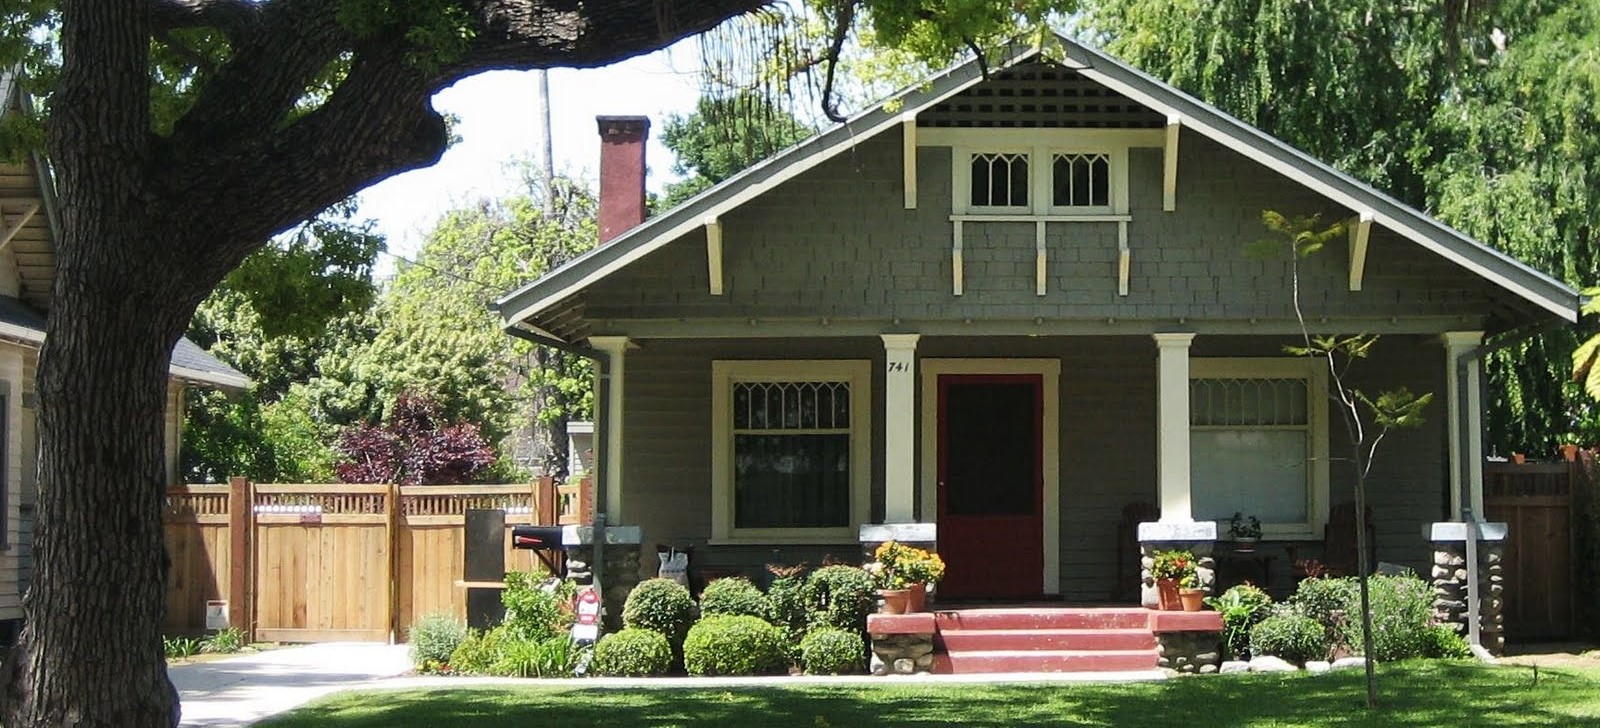 6 Reasons to Invest in Single-Family Homes